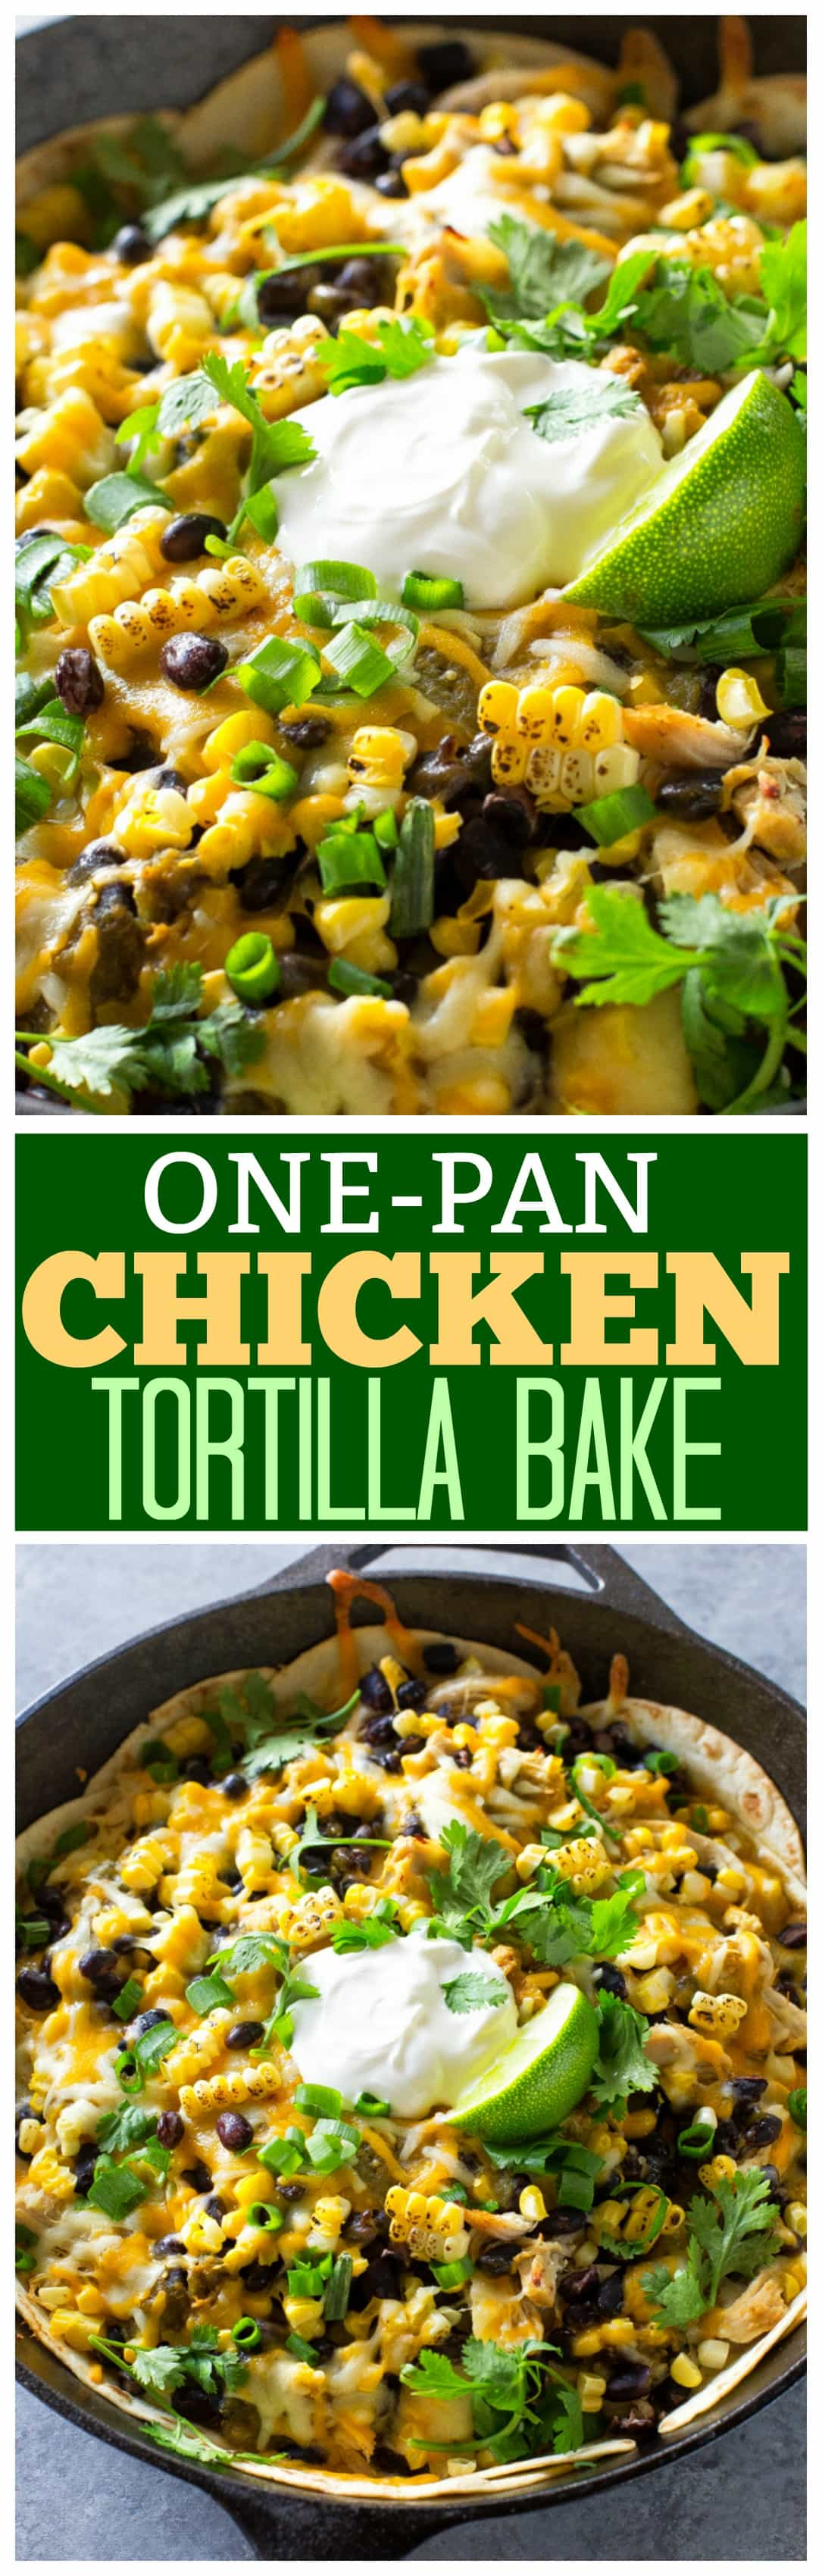 This One-Pan Chicken Tortilla Bake is a spicy Mexican dinner with only 7 ingredients. Layers of tortilla, chicken, black beans, and corn with lots of cheese in between.  #onepan #mexican #chicken #dinner #easy